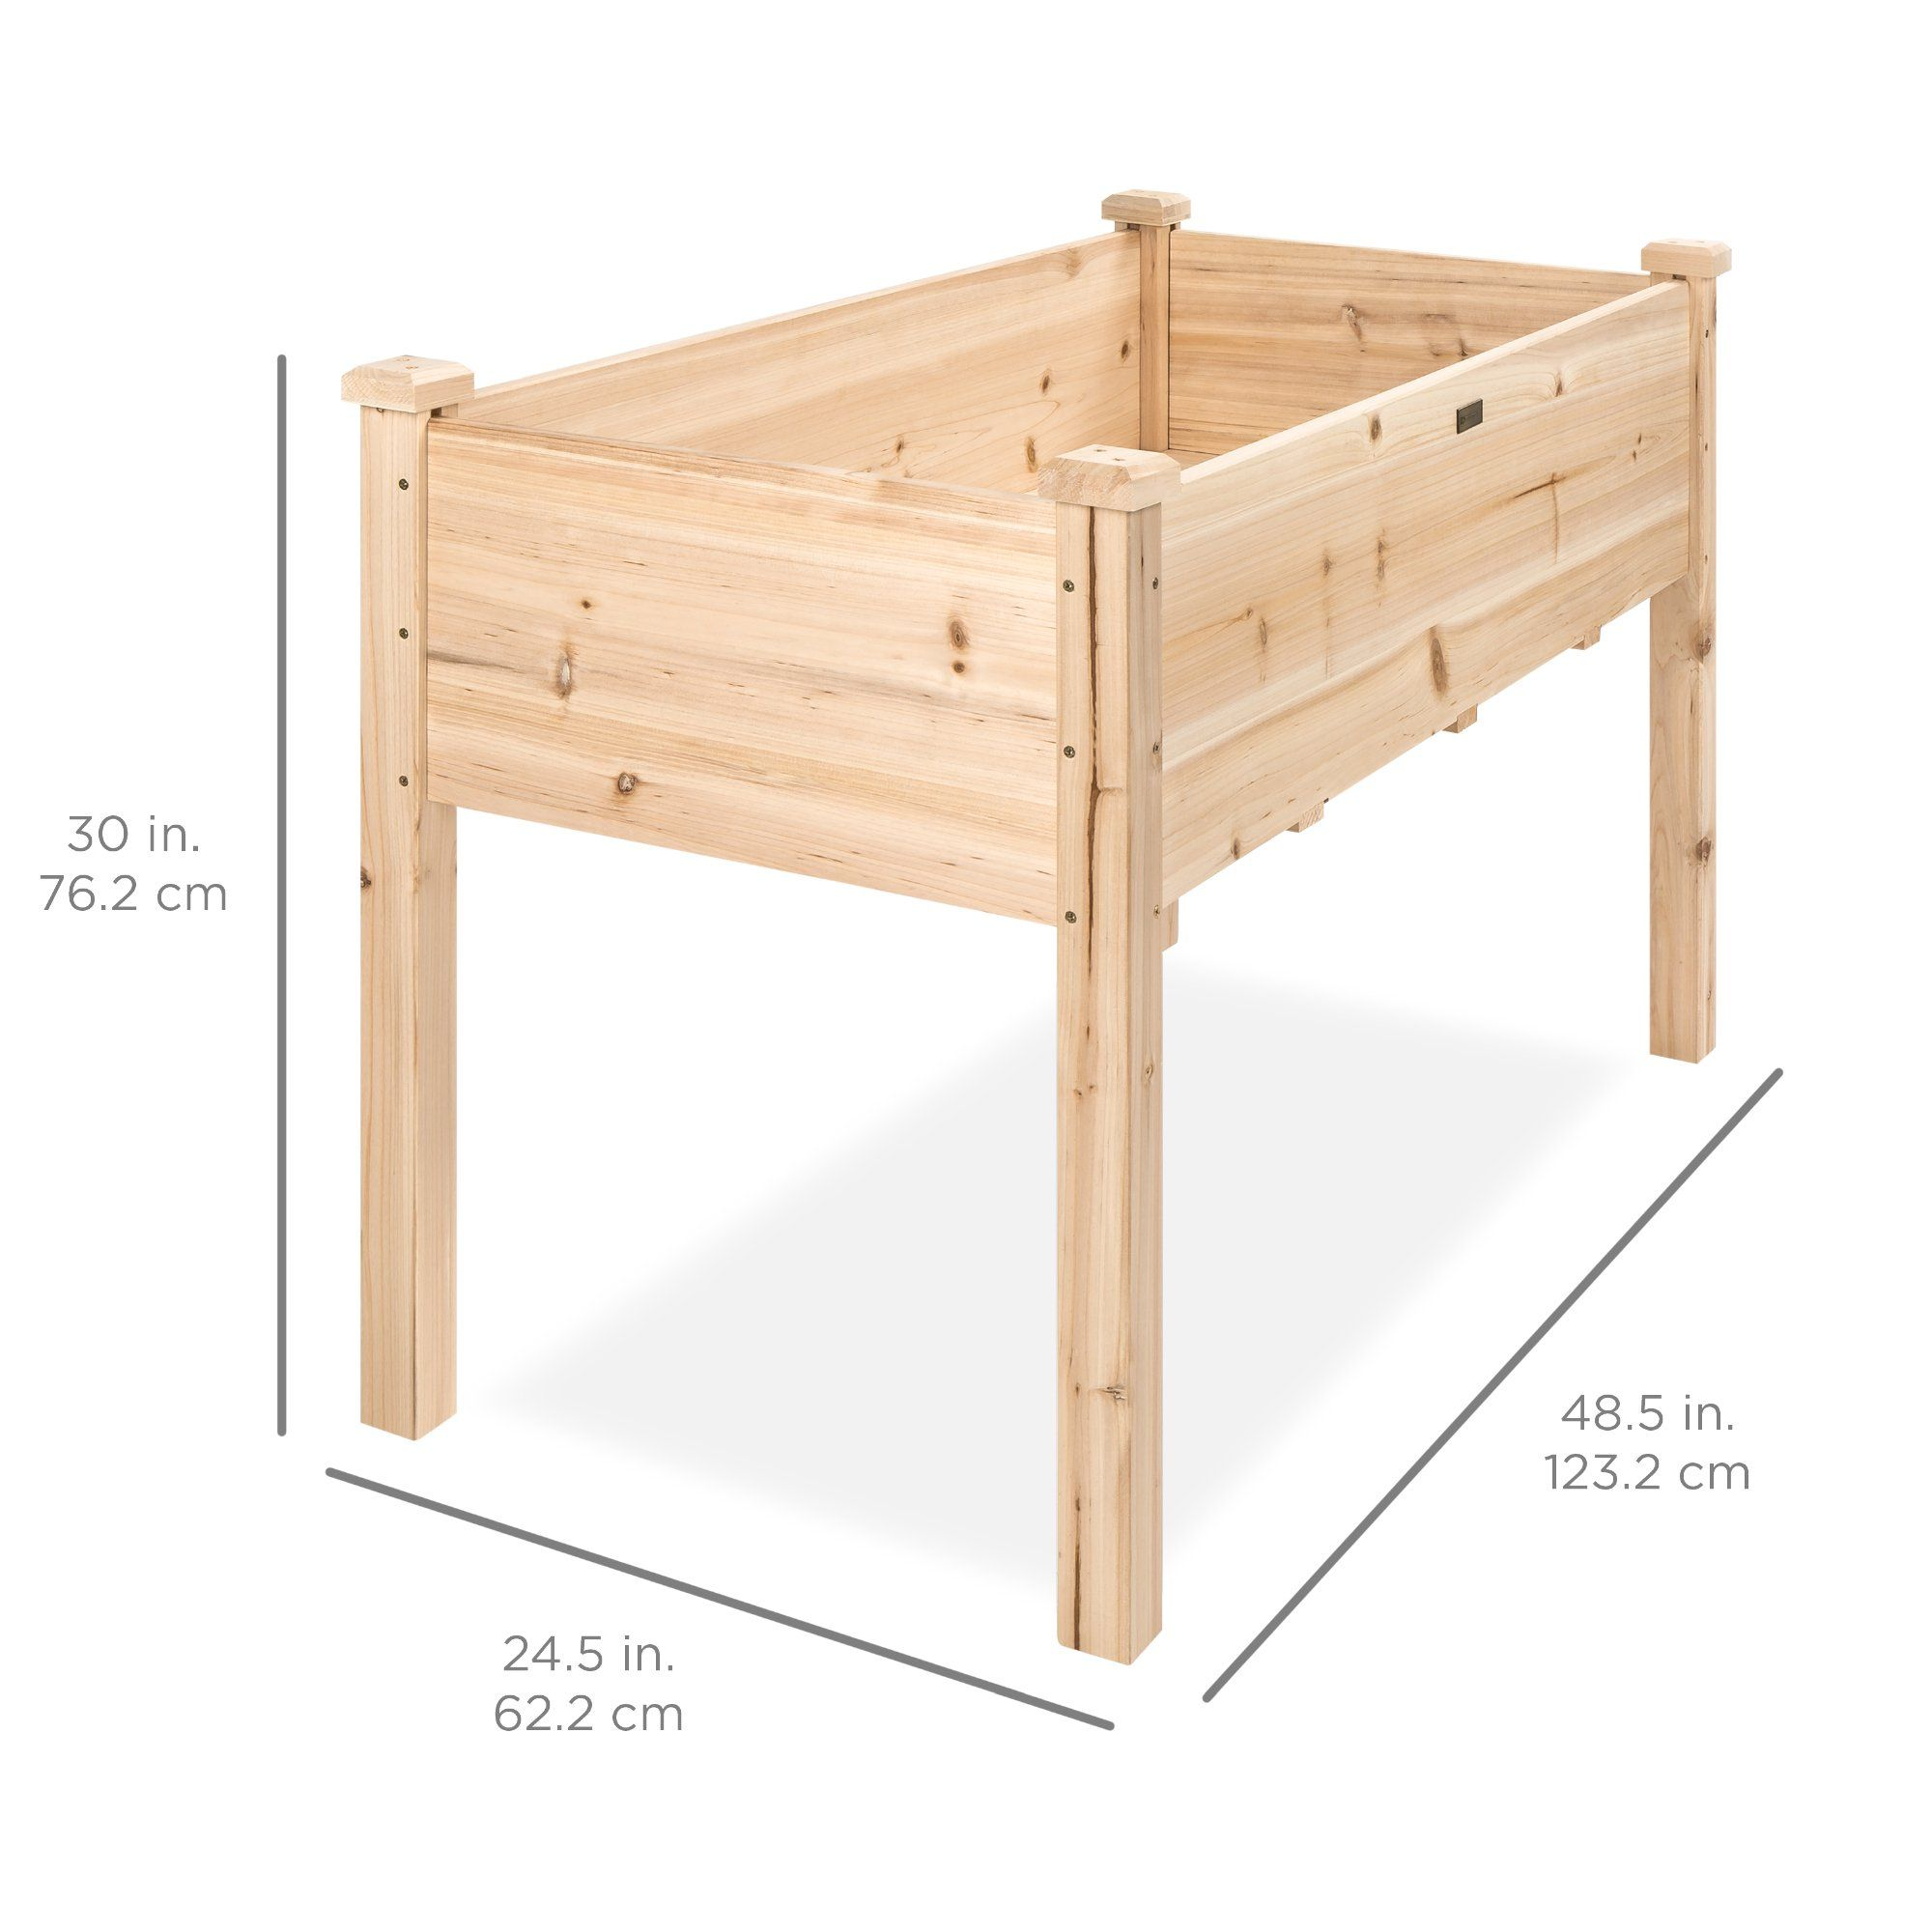 Best Choice Products 48x24x30in Elevated Wood Planter Garden Bed Box Stand for Backyard, Patio - Natural -   18 diy Wood garden ideas